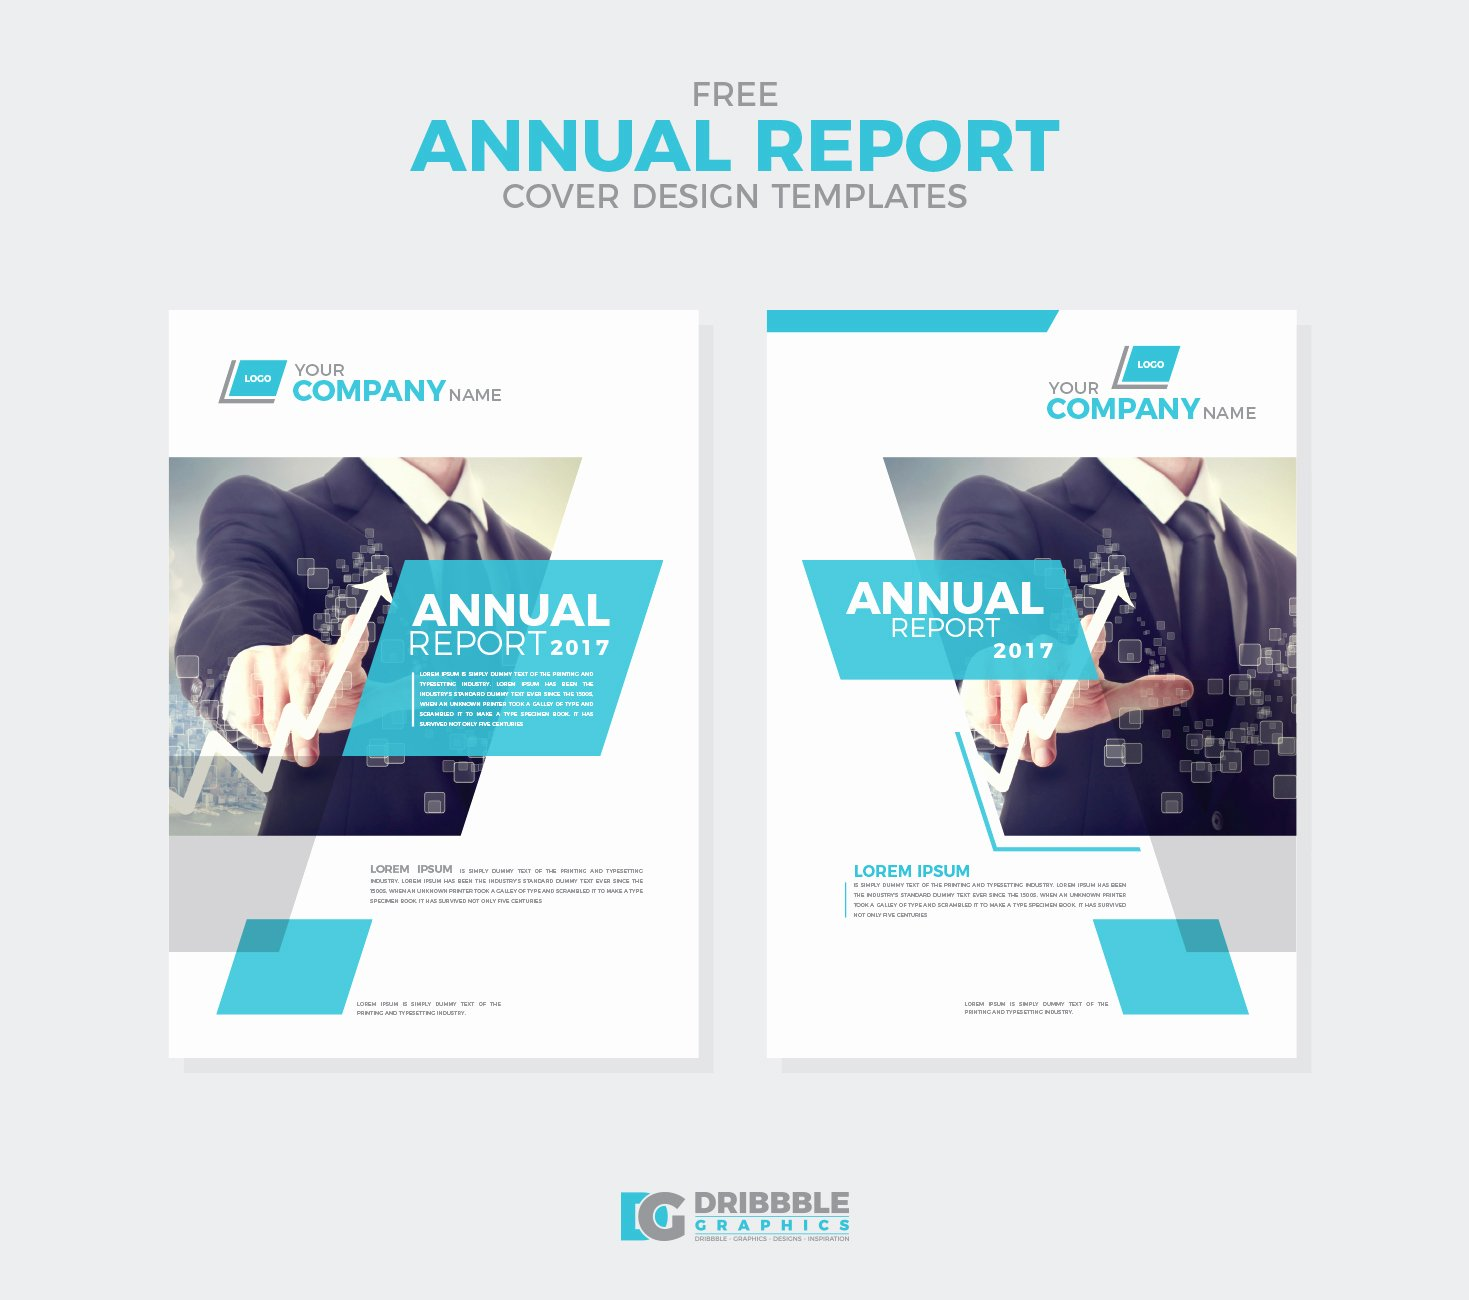 Annual Financial Report Template Awesome Free Annual Report Cover Design Templates